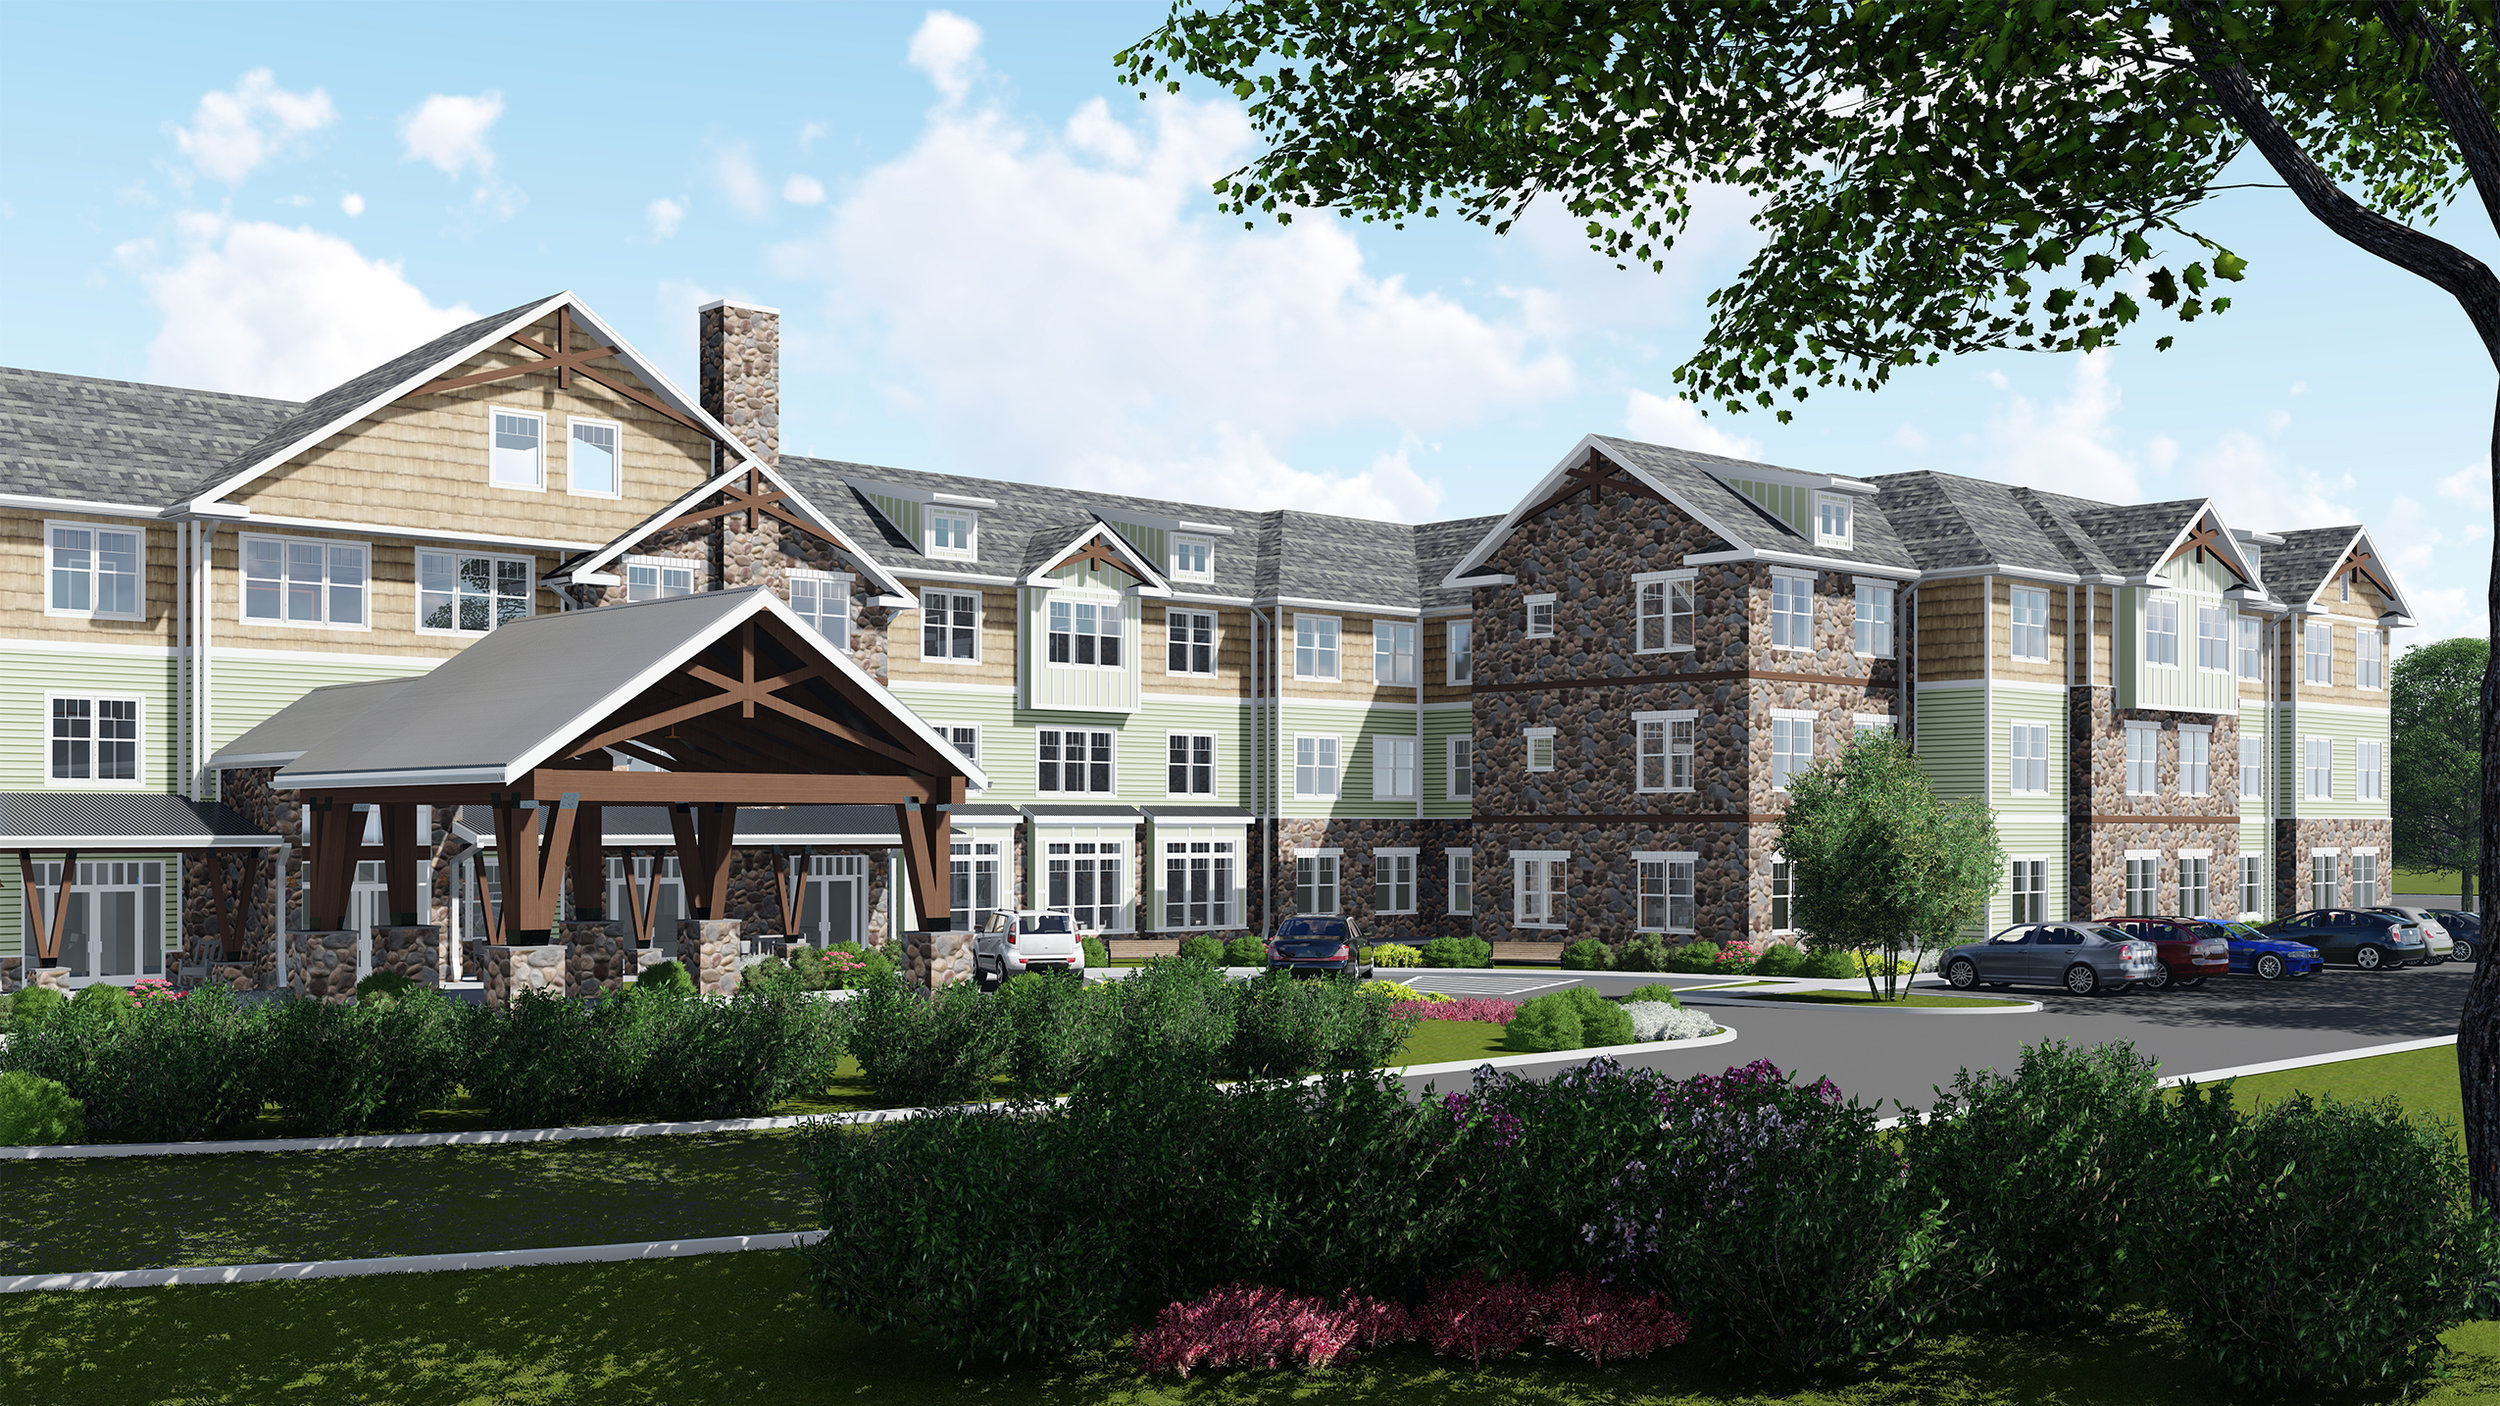 Built by March Construction, Capitol Seniors Housing Project in Greenburgh New York